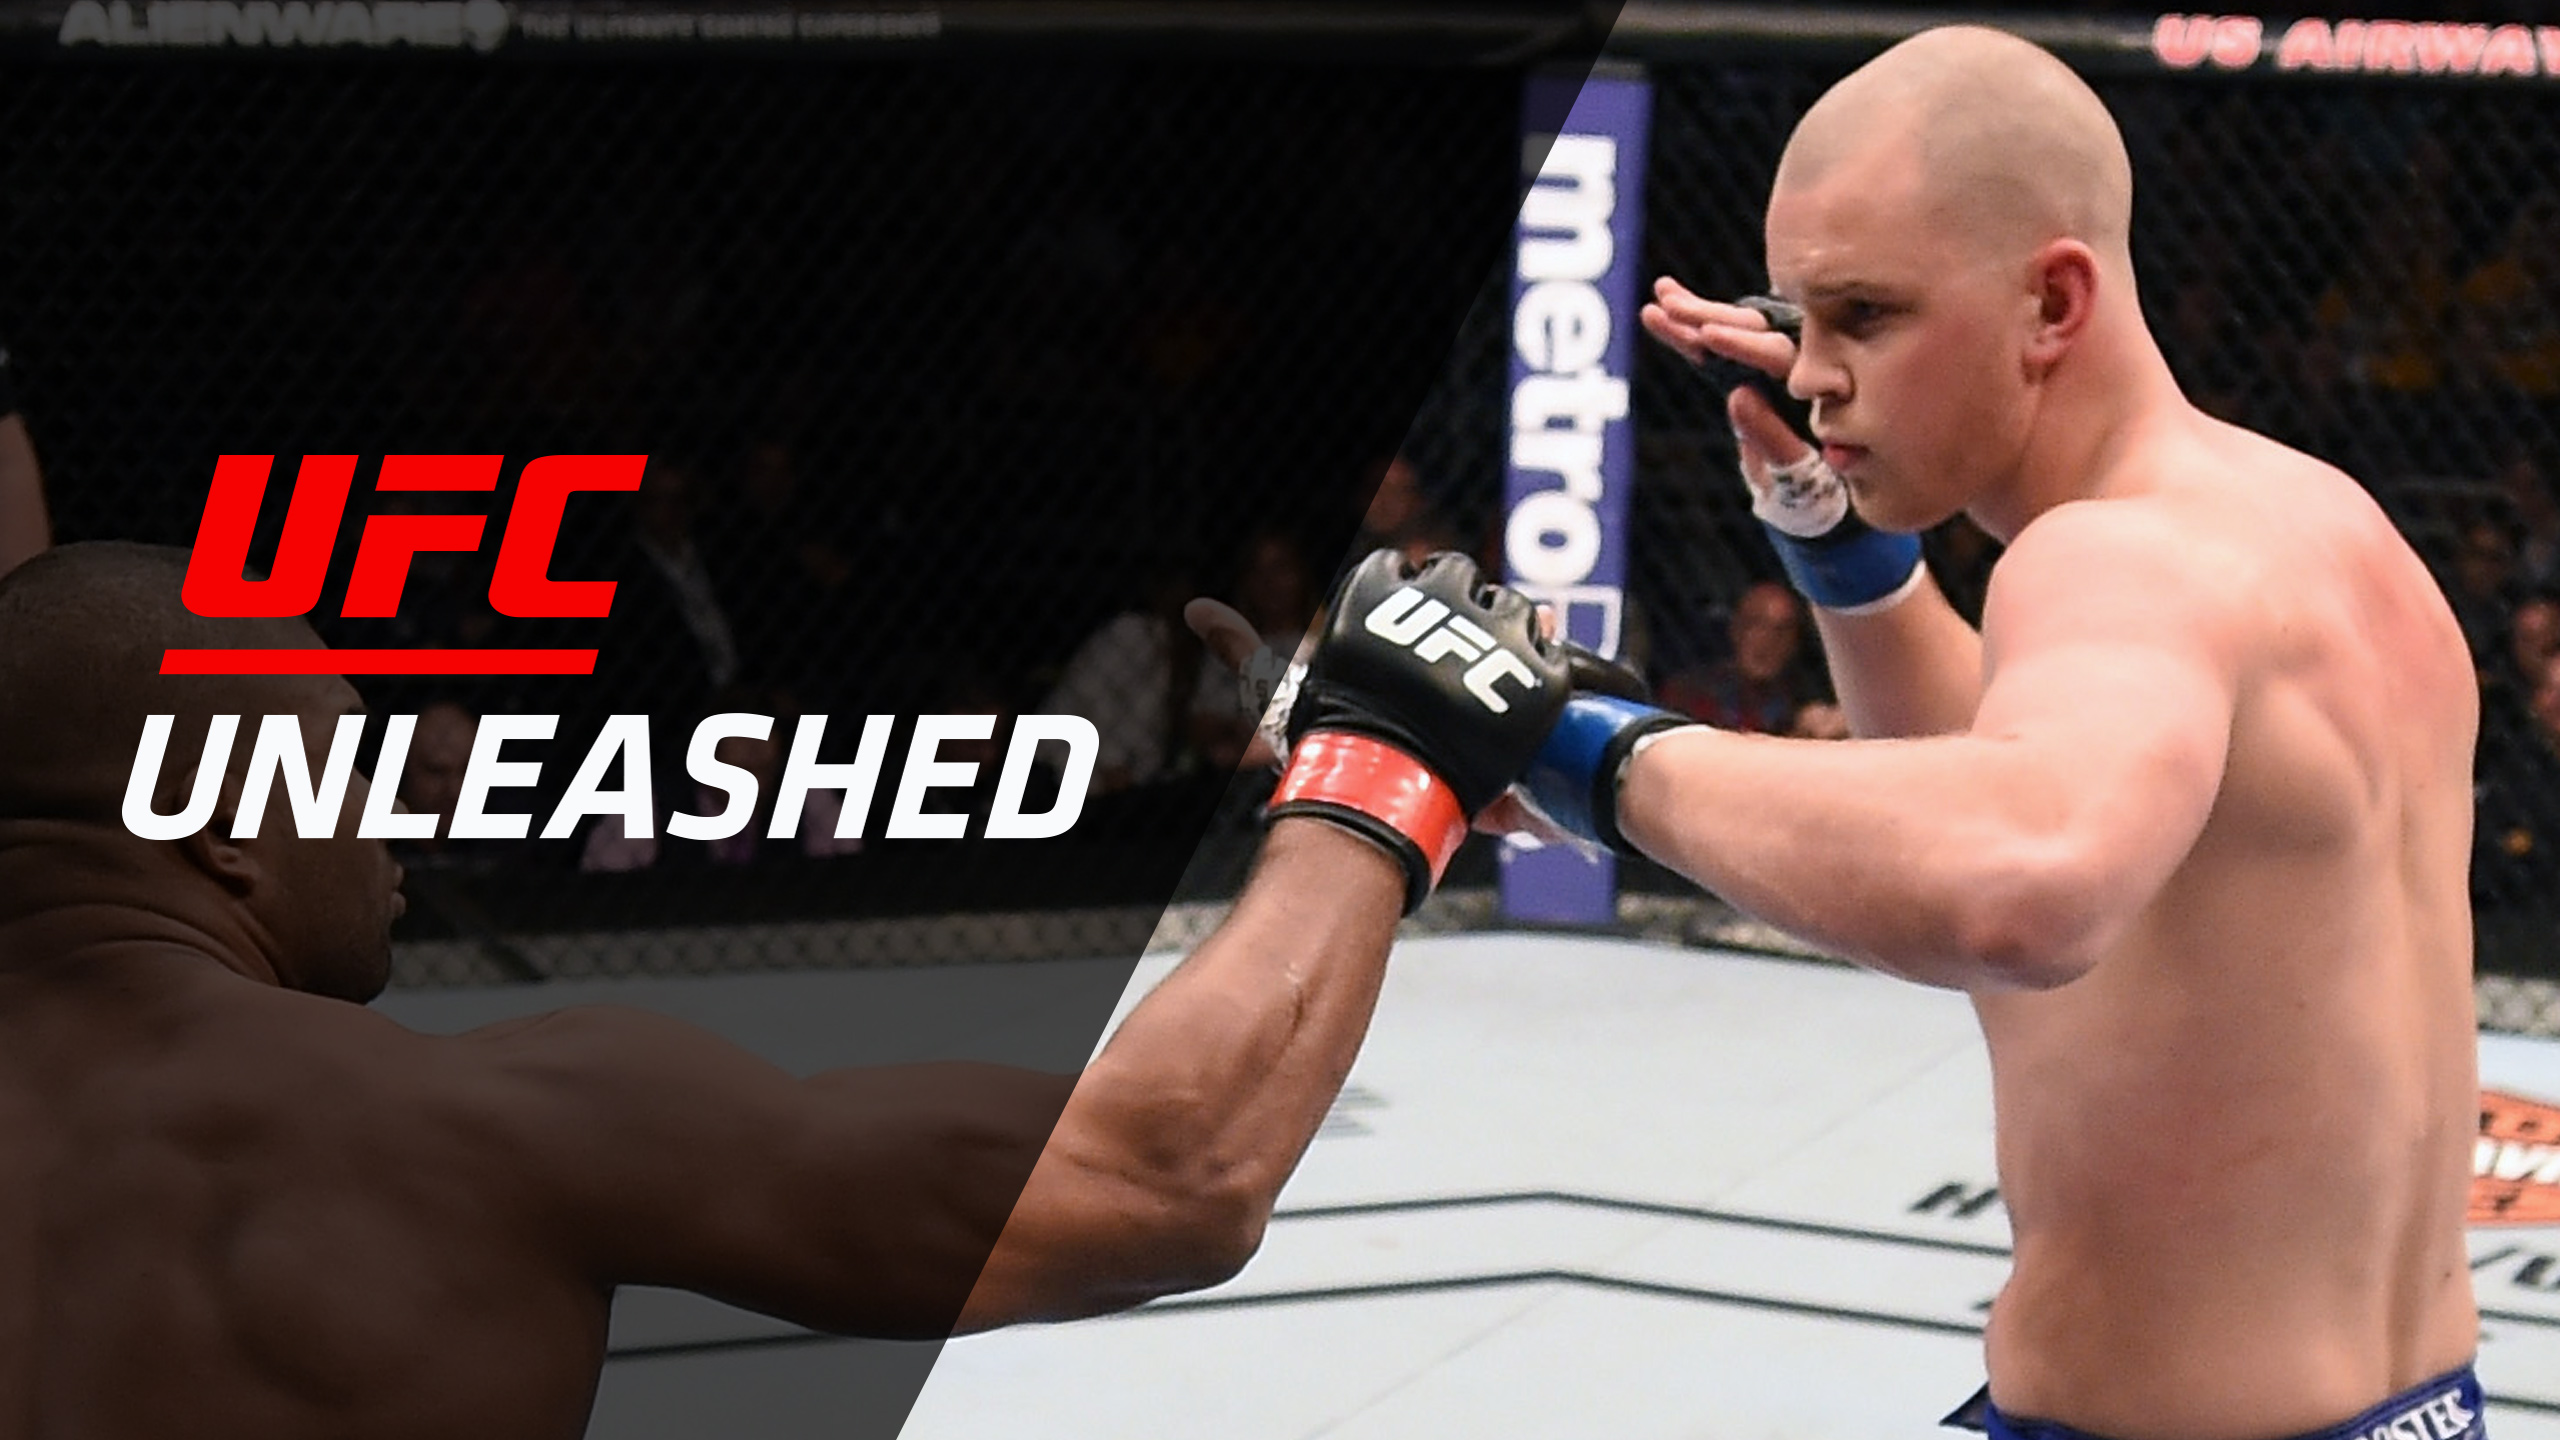 UFC Unleashed: Overeem vs. Struve